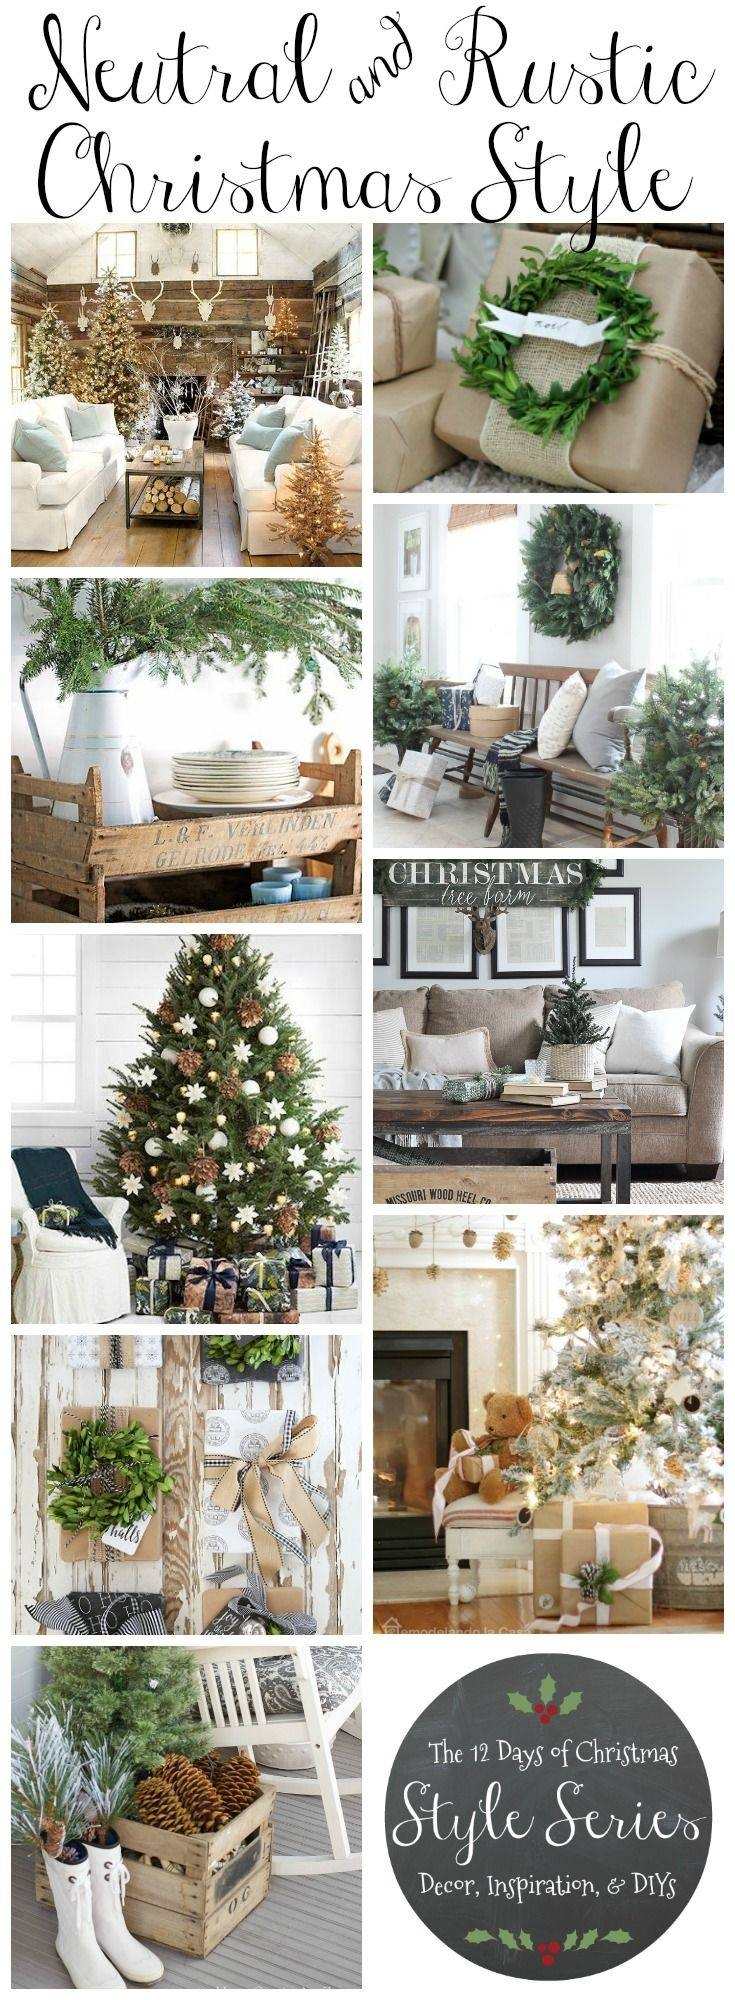 Best 25+ Rustic Christmas Decorations Ideas On Pinterest | Rustic regarding Rustic Christmas Coffee Table Decors (Image 12 of 30)